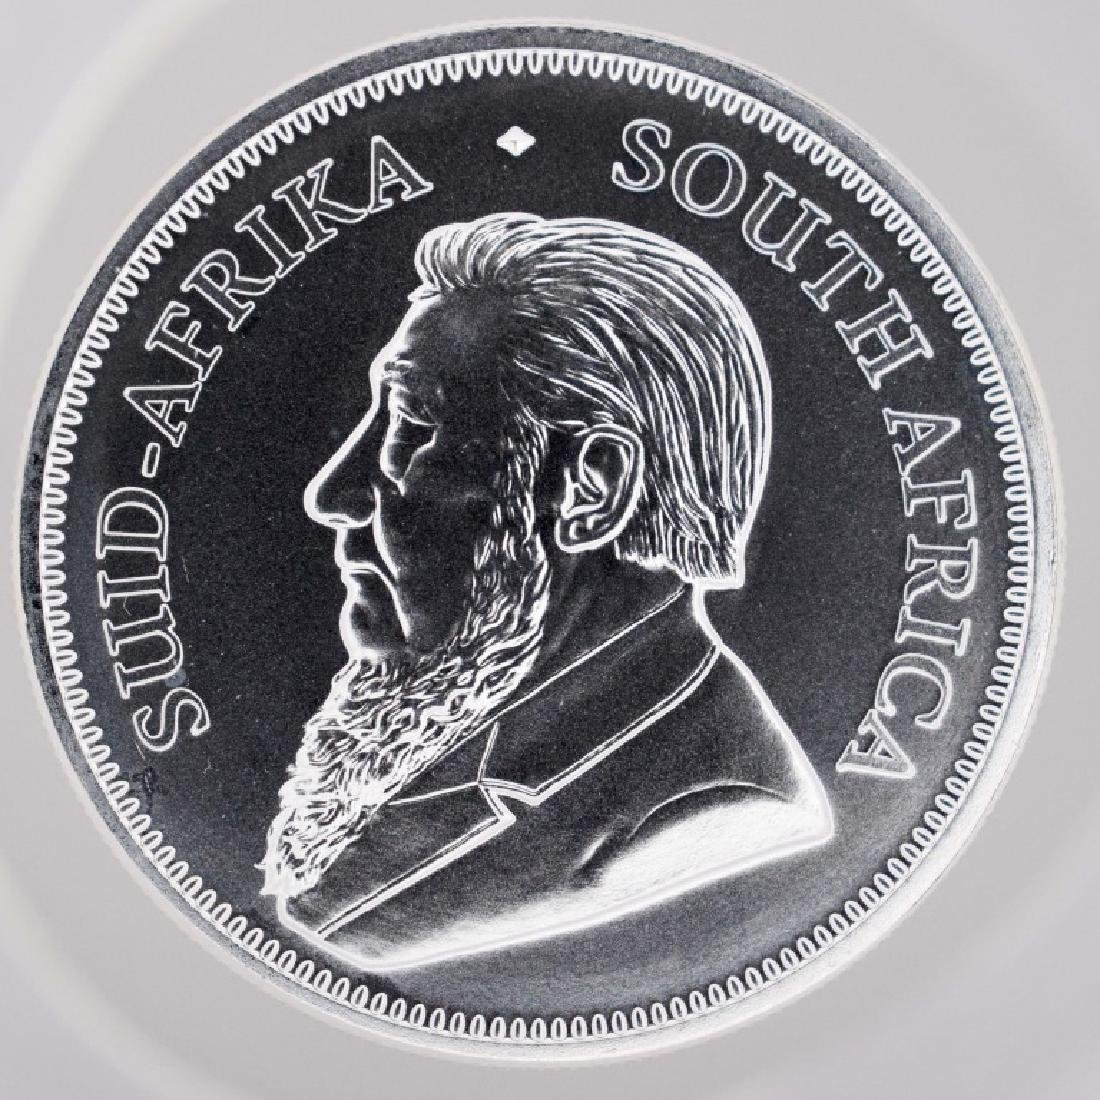 2018 South African Pure Silver Krugerrand BU, 1 ounce,